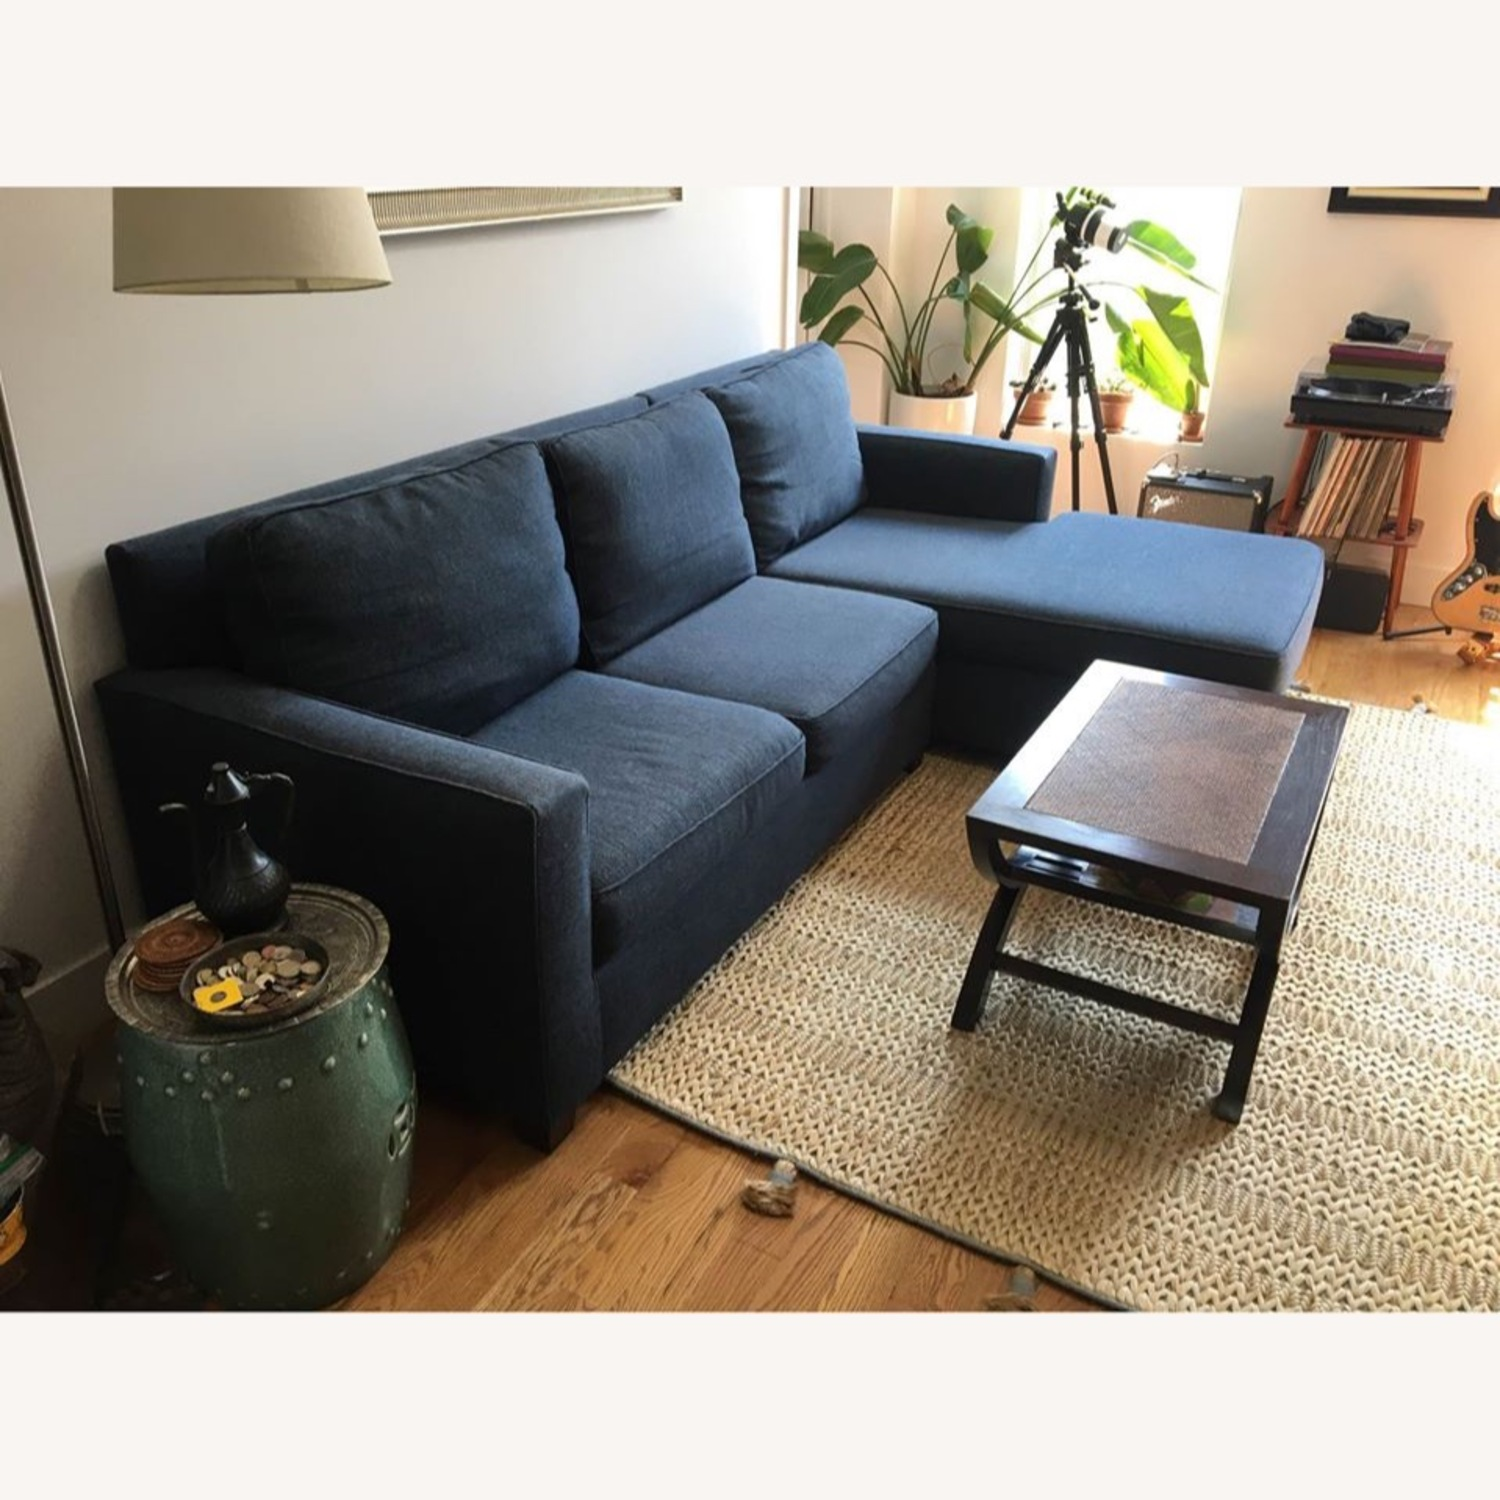 West Elm Henry L-Shaped Sofa in Blue Twill - image-2